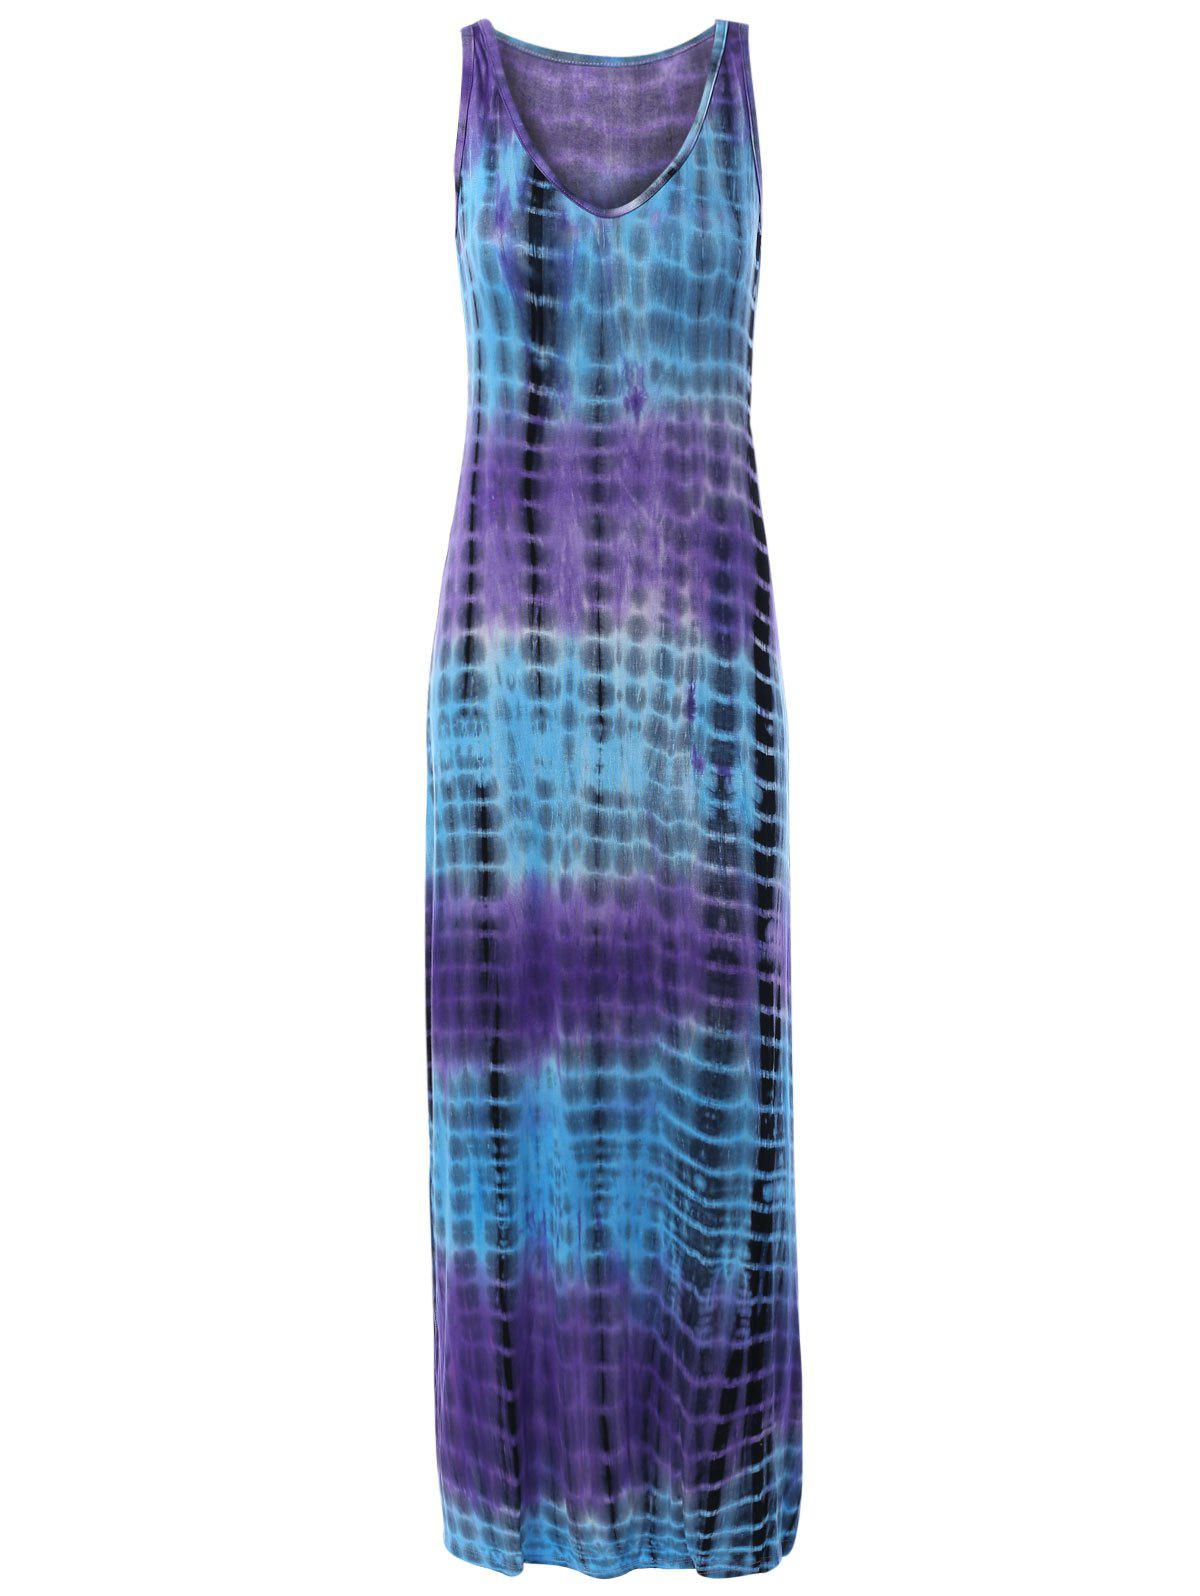 Sleeveless V-Neck Geometric Tie Dyed Women's Dress - COLORMIX ONE SIZE